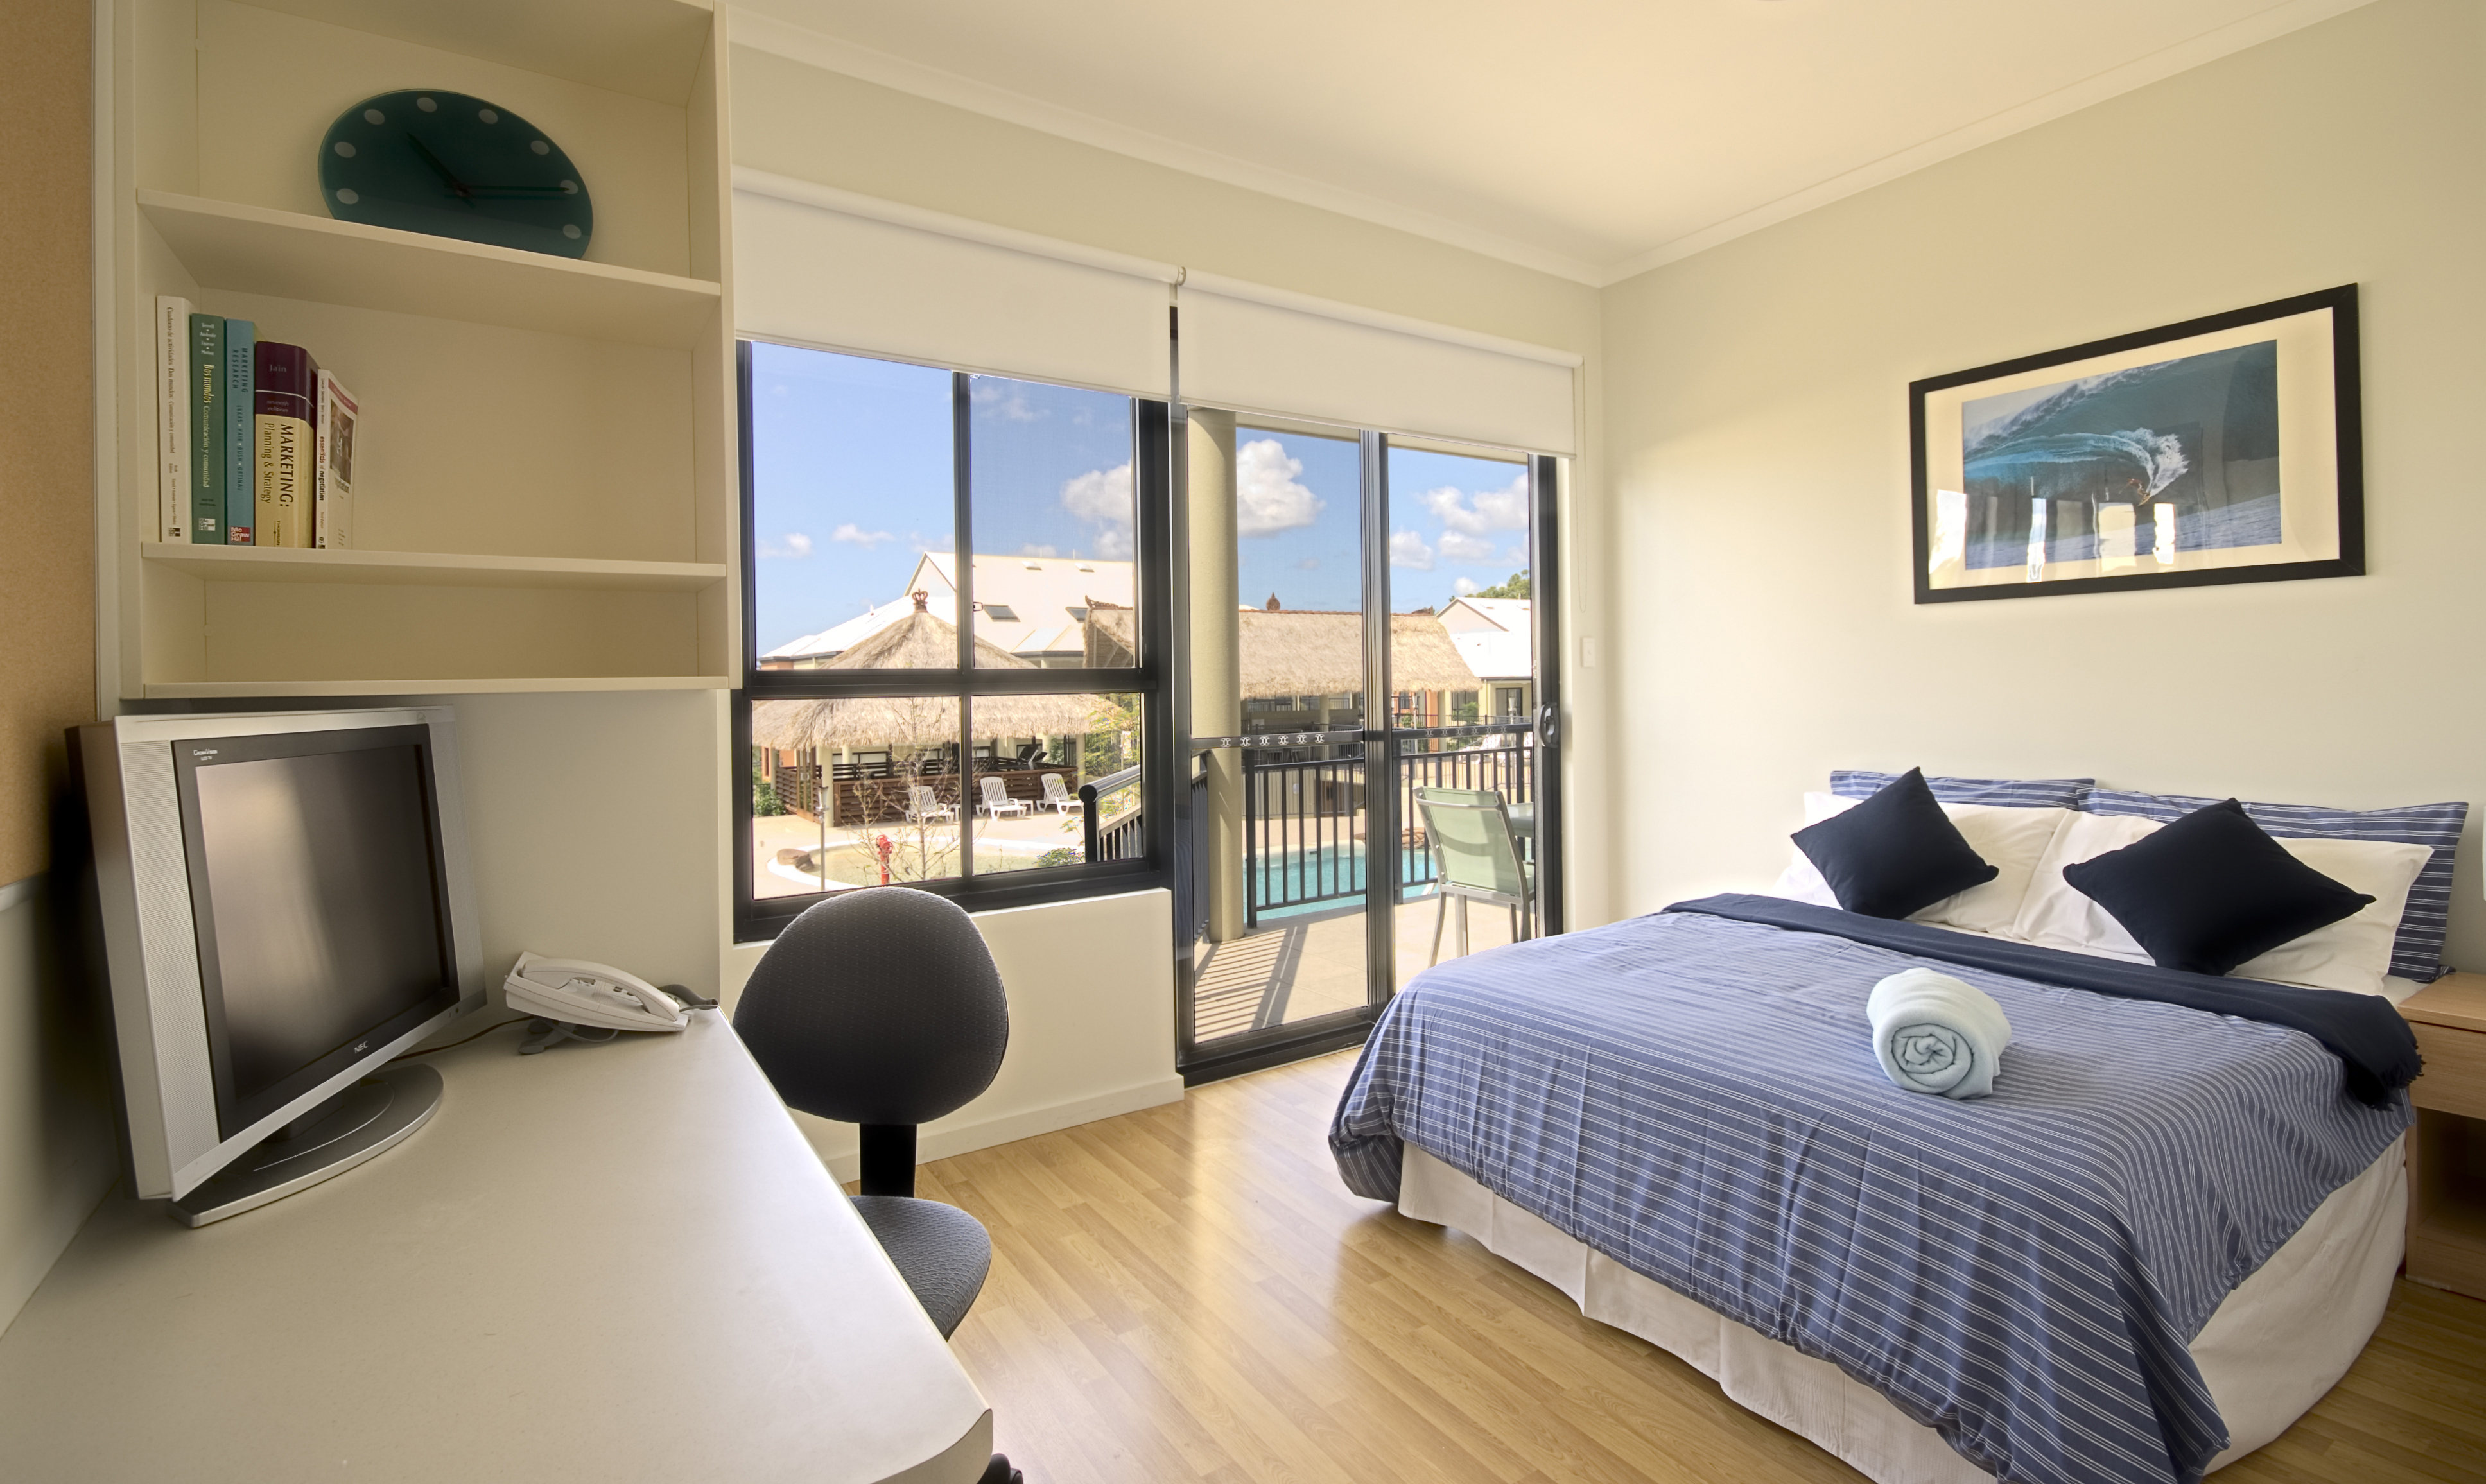 Rooms For Renting Brisbane